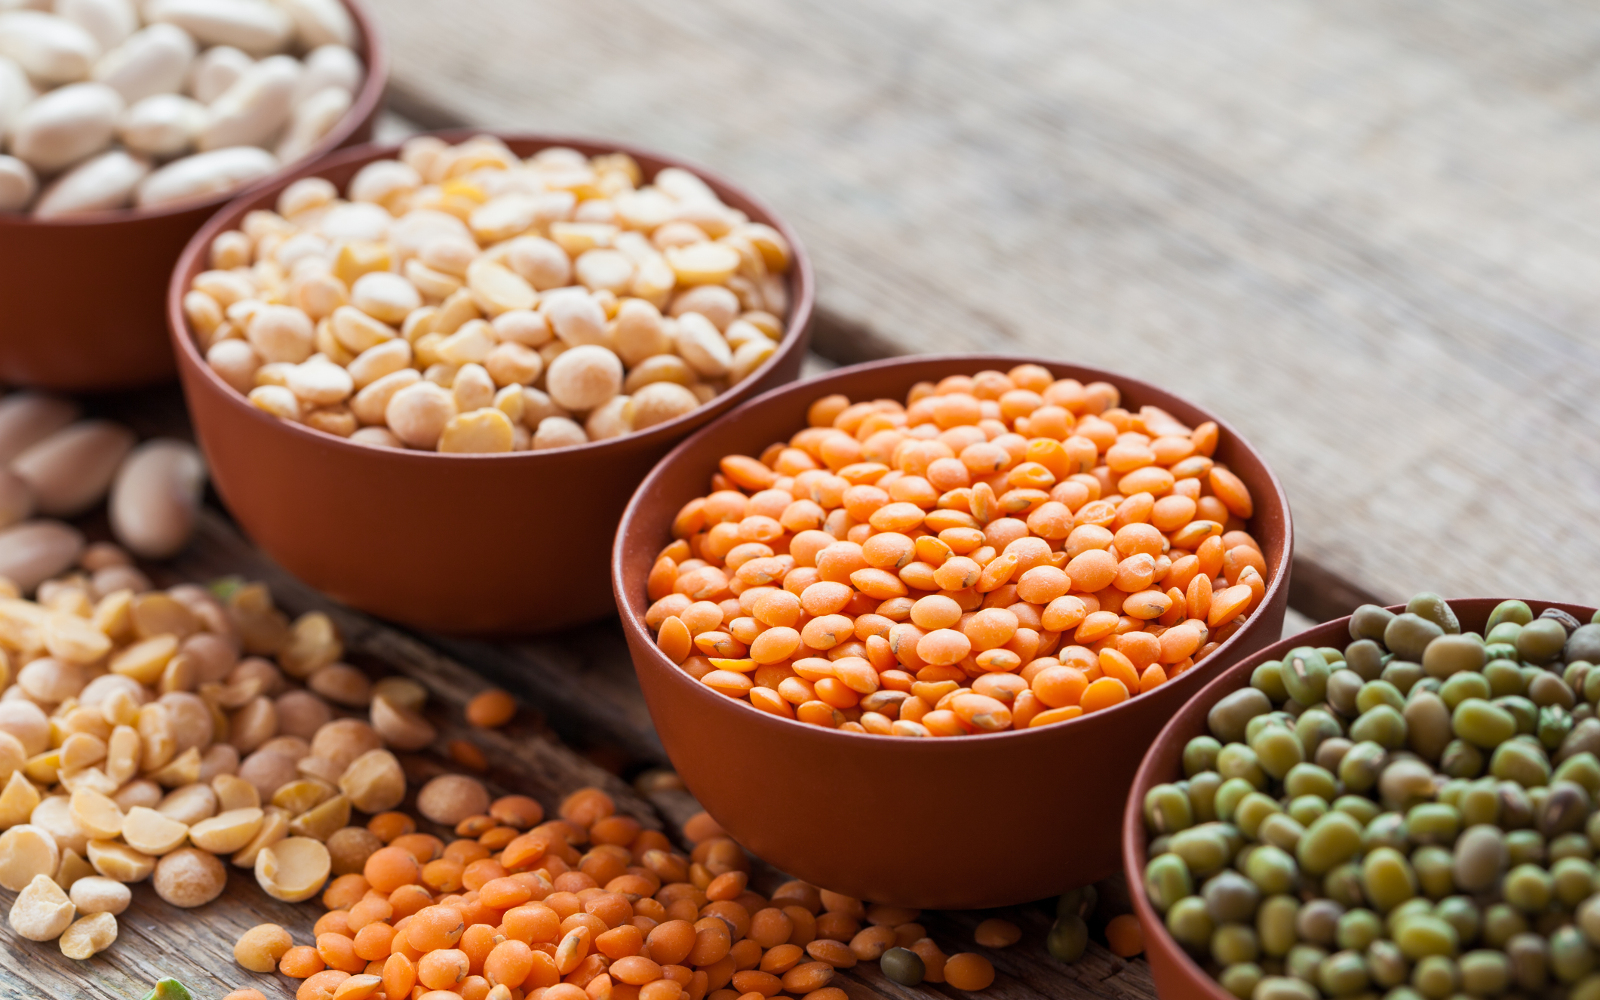 These 14 Foods Made With Lentils Prove That There Is More To This